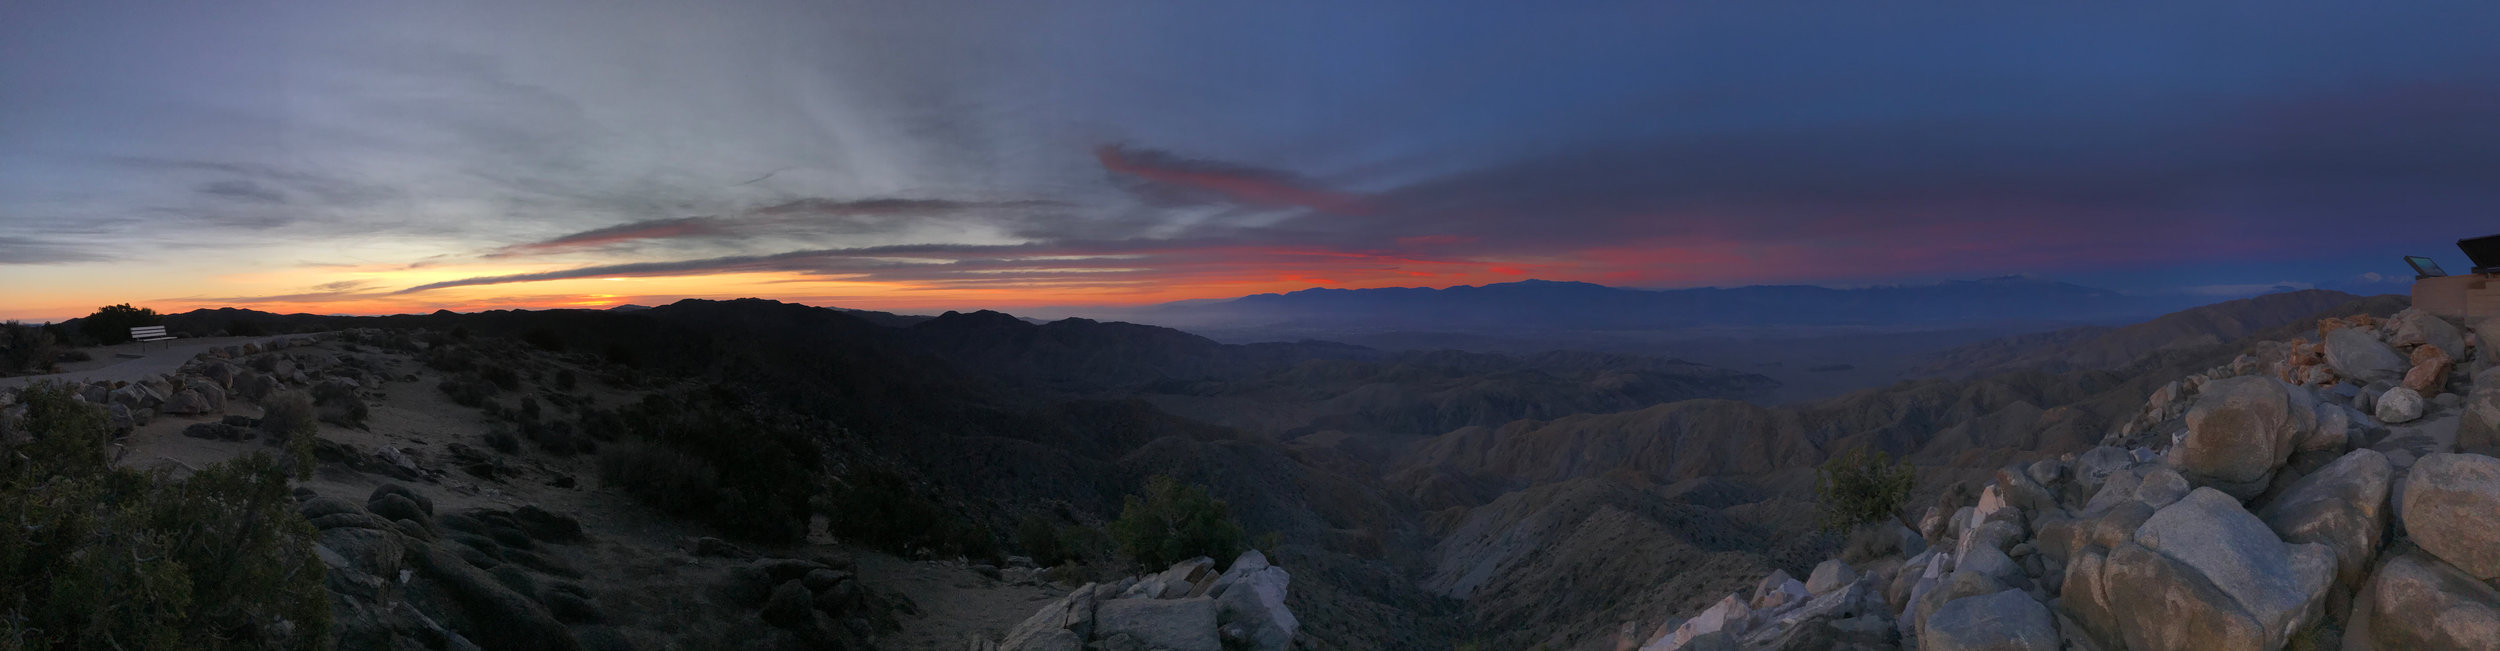 Sunrise from Keys Point   : a stunning vista overlooking the Coachella Valley. Snow-covered Mt. San Jacinto visible on the far right.